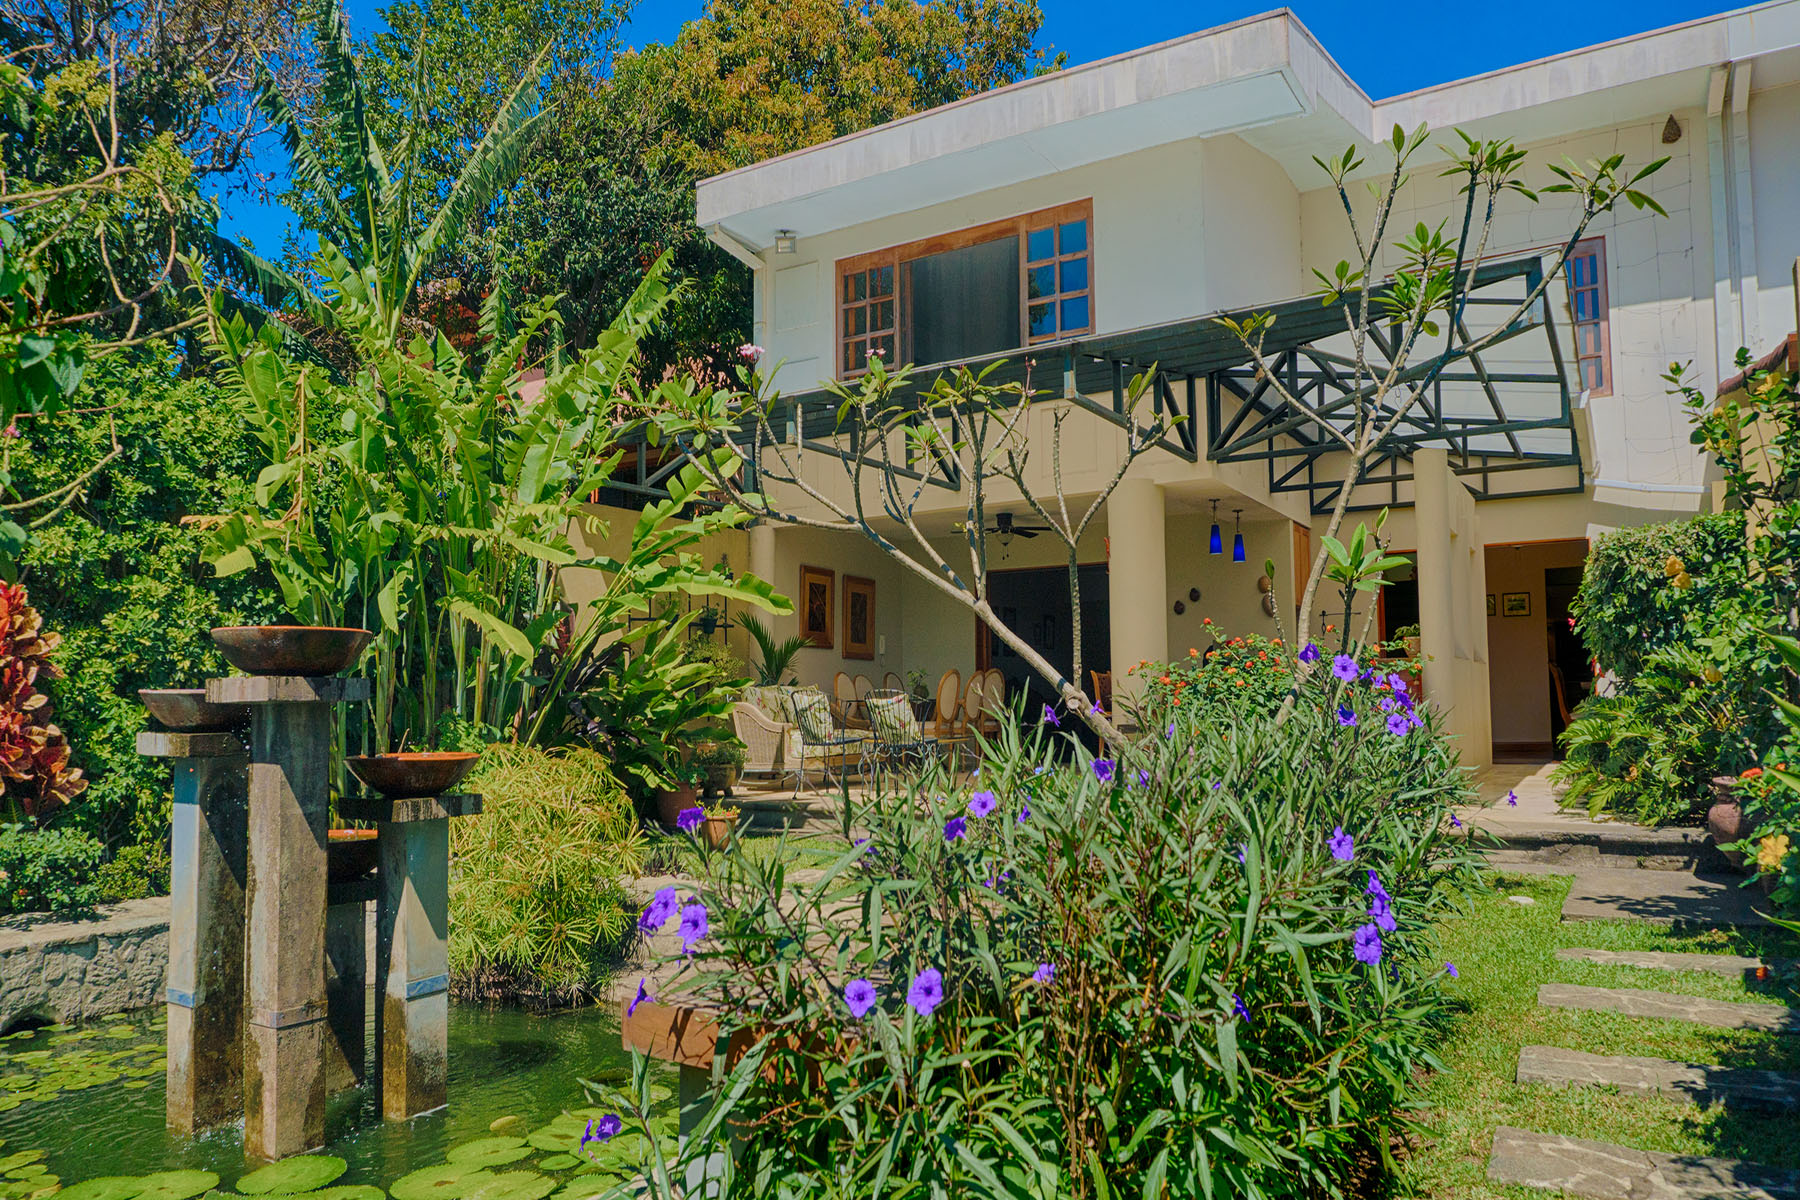 Casa Unifamiliar por un Venta en Cariari Golf Loveres Views Belen, Heredia Costa Rica